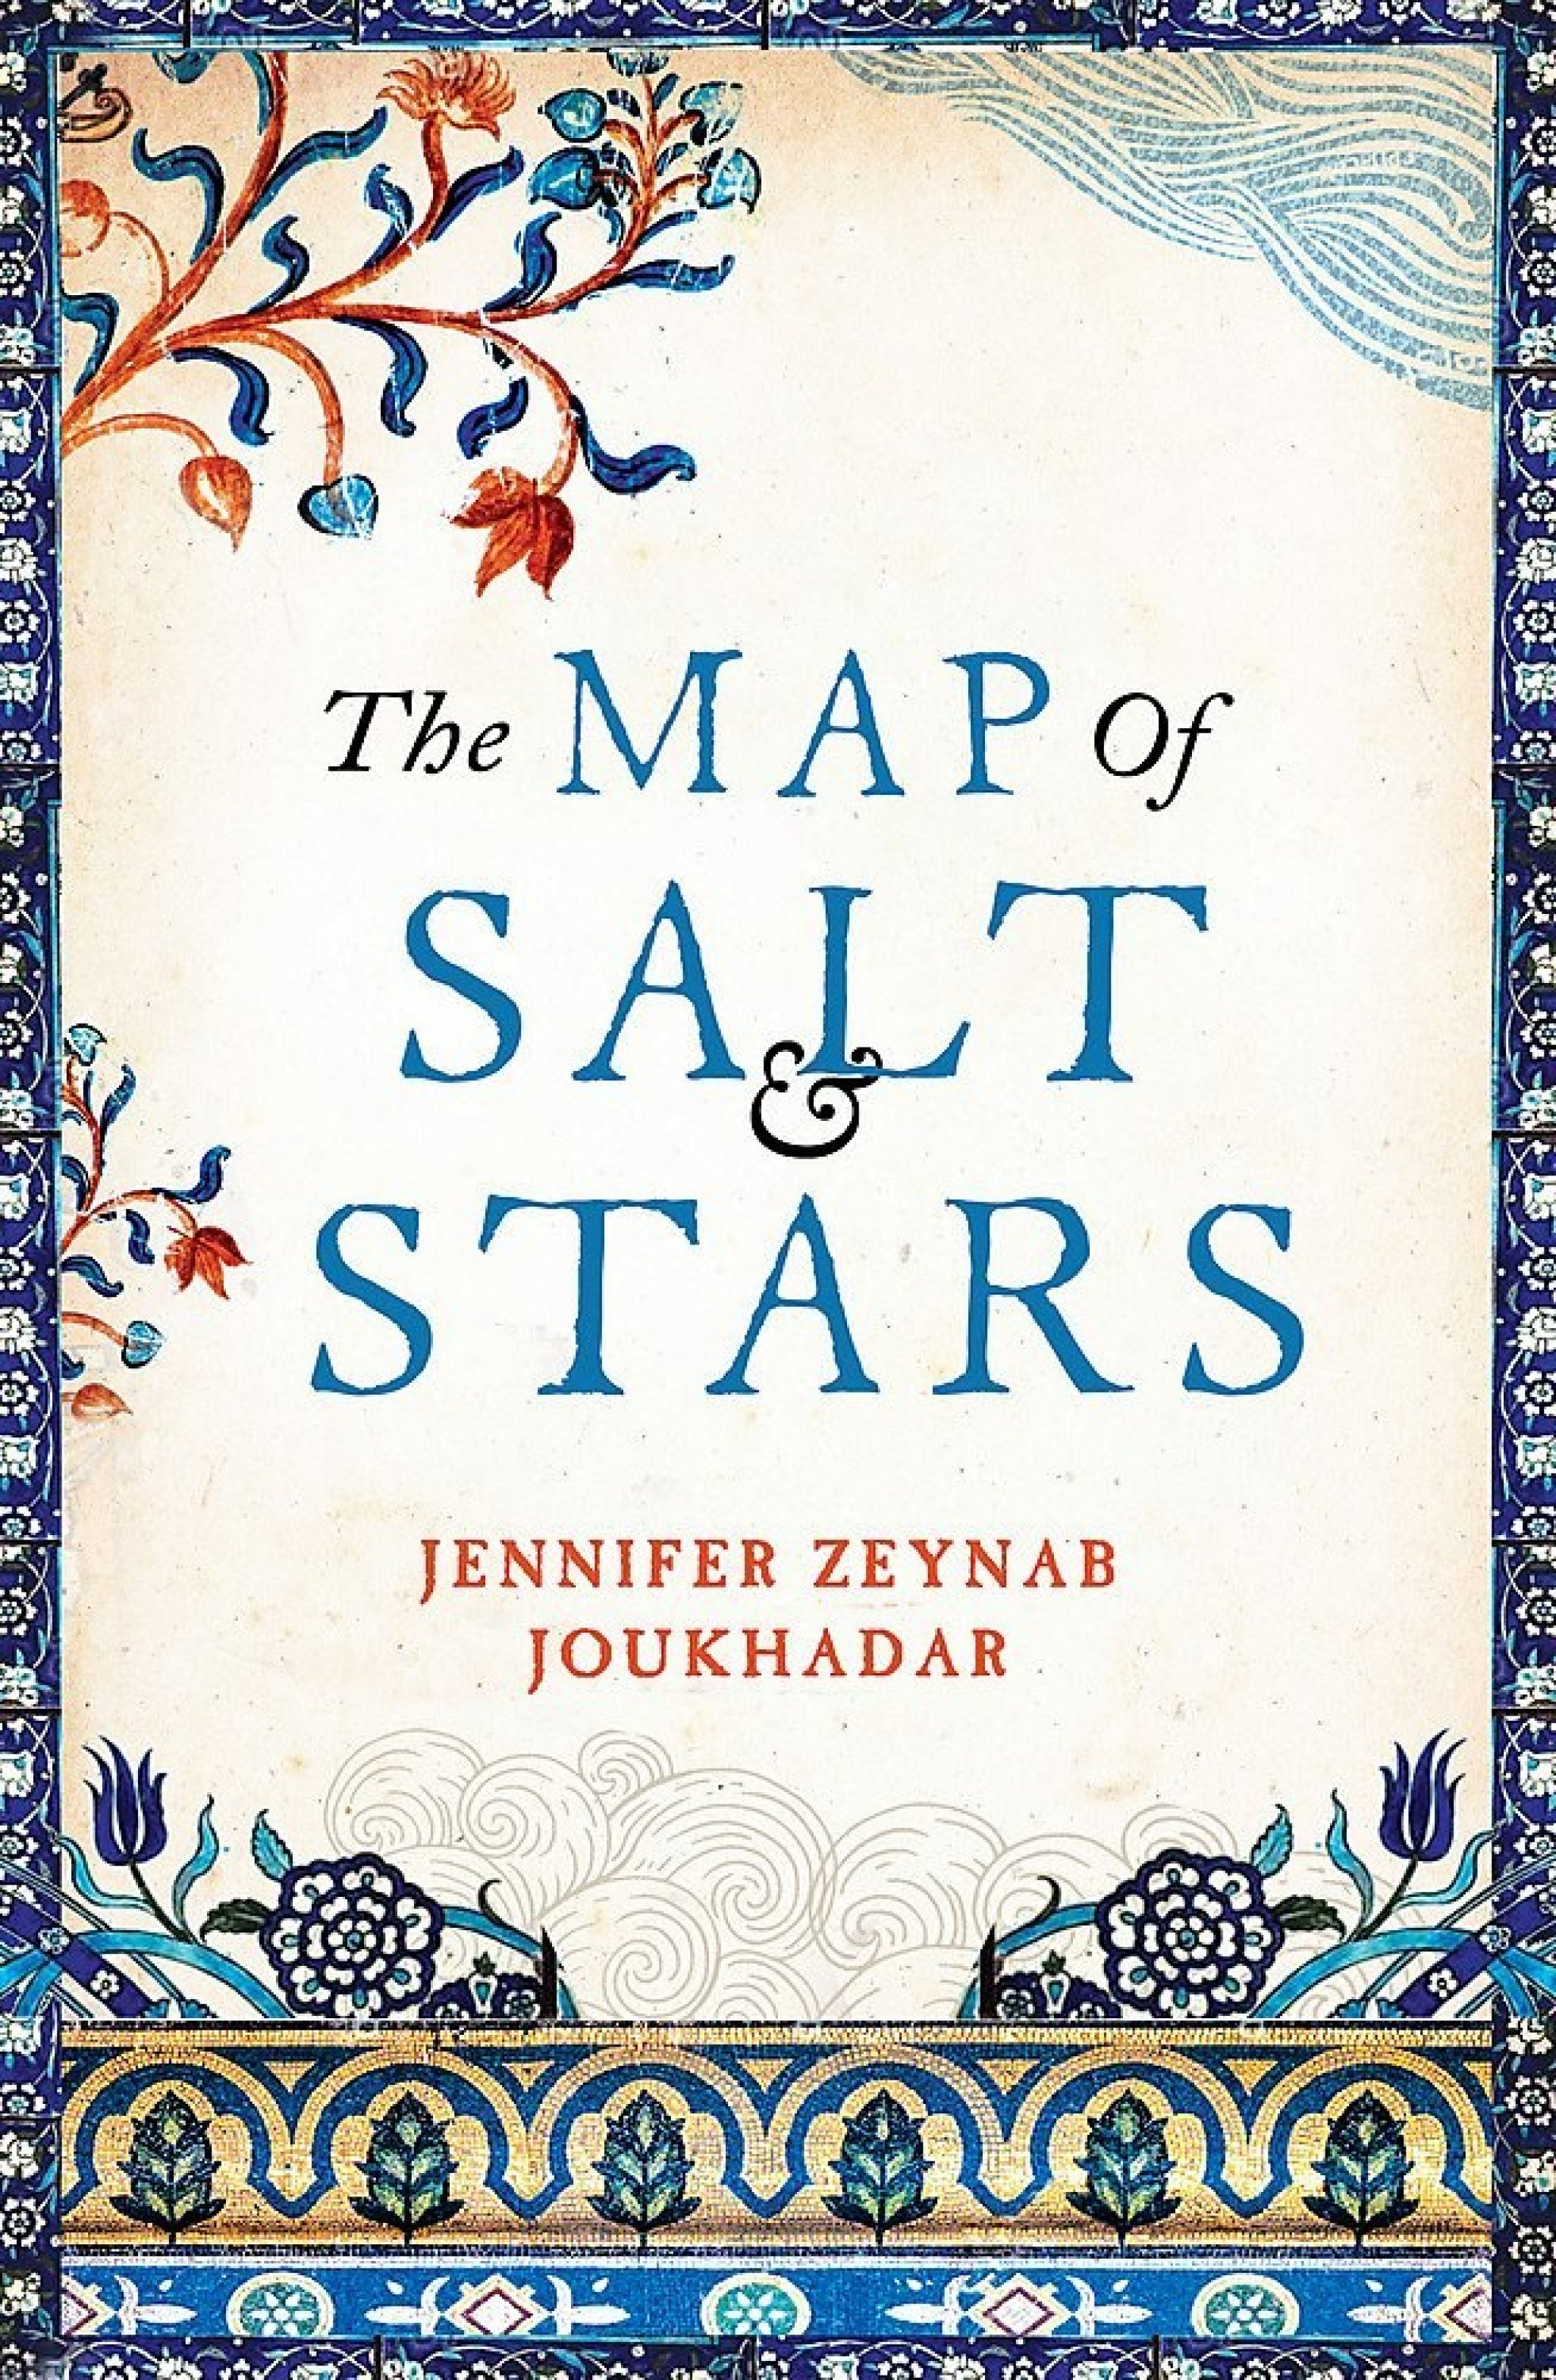 An Introduction to The Map of Salt & Stars by Jennifer Zeynab Joukhadar